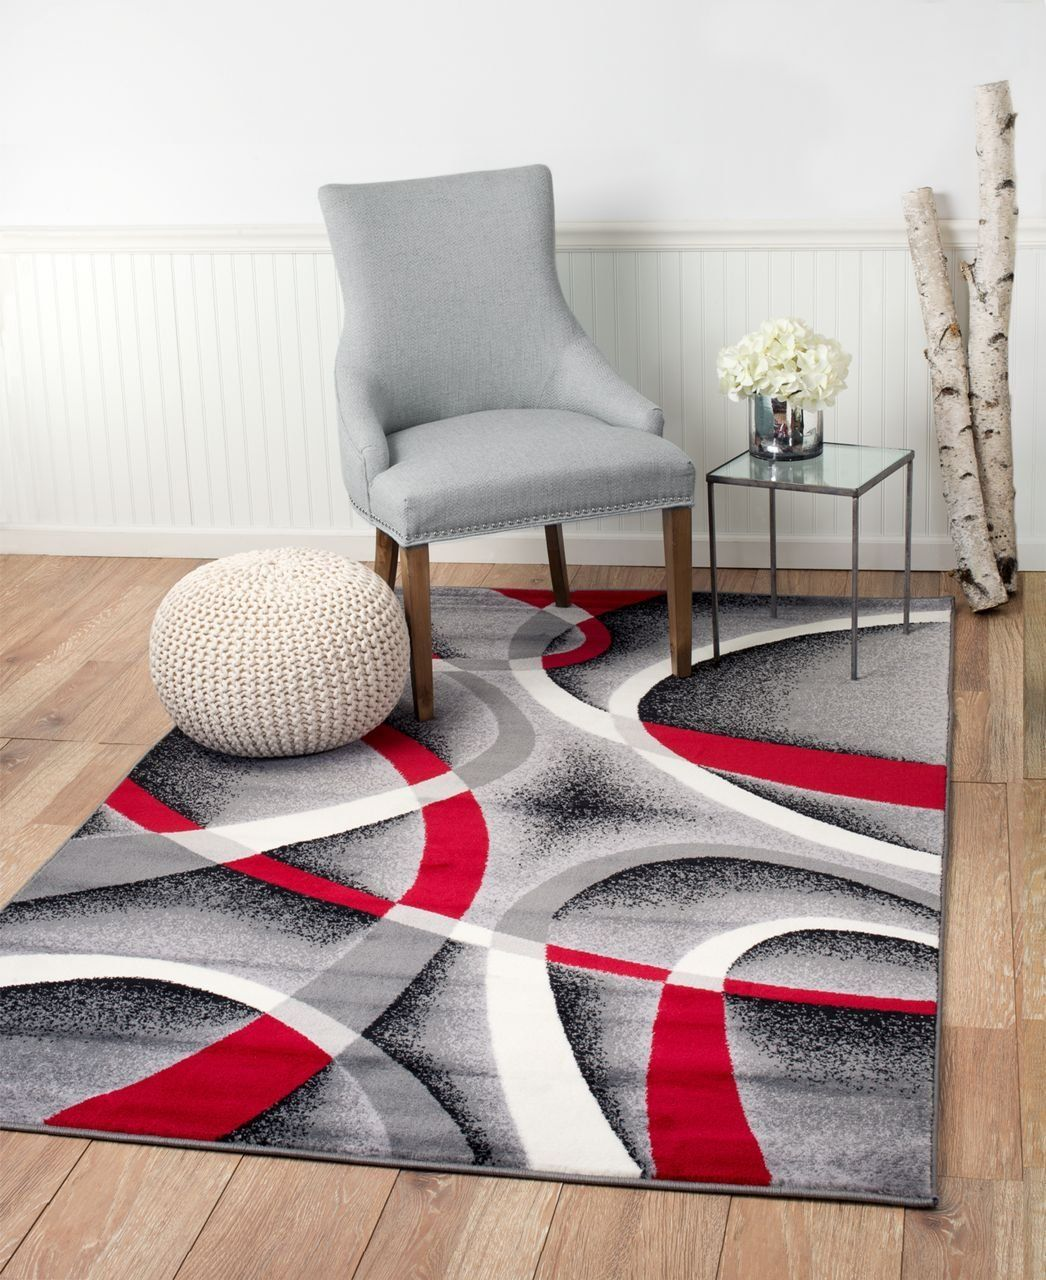 Area Rug With Black Red And Gray Colors Get This Modern Abstract